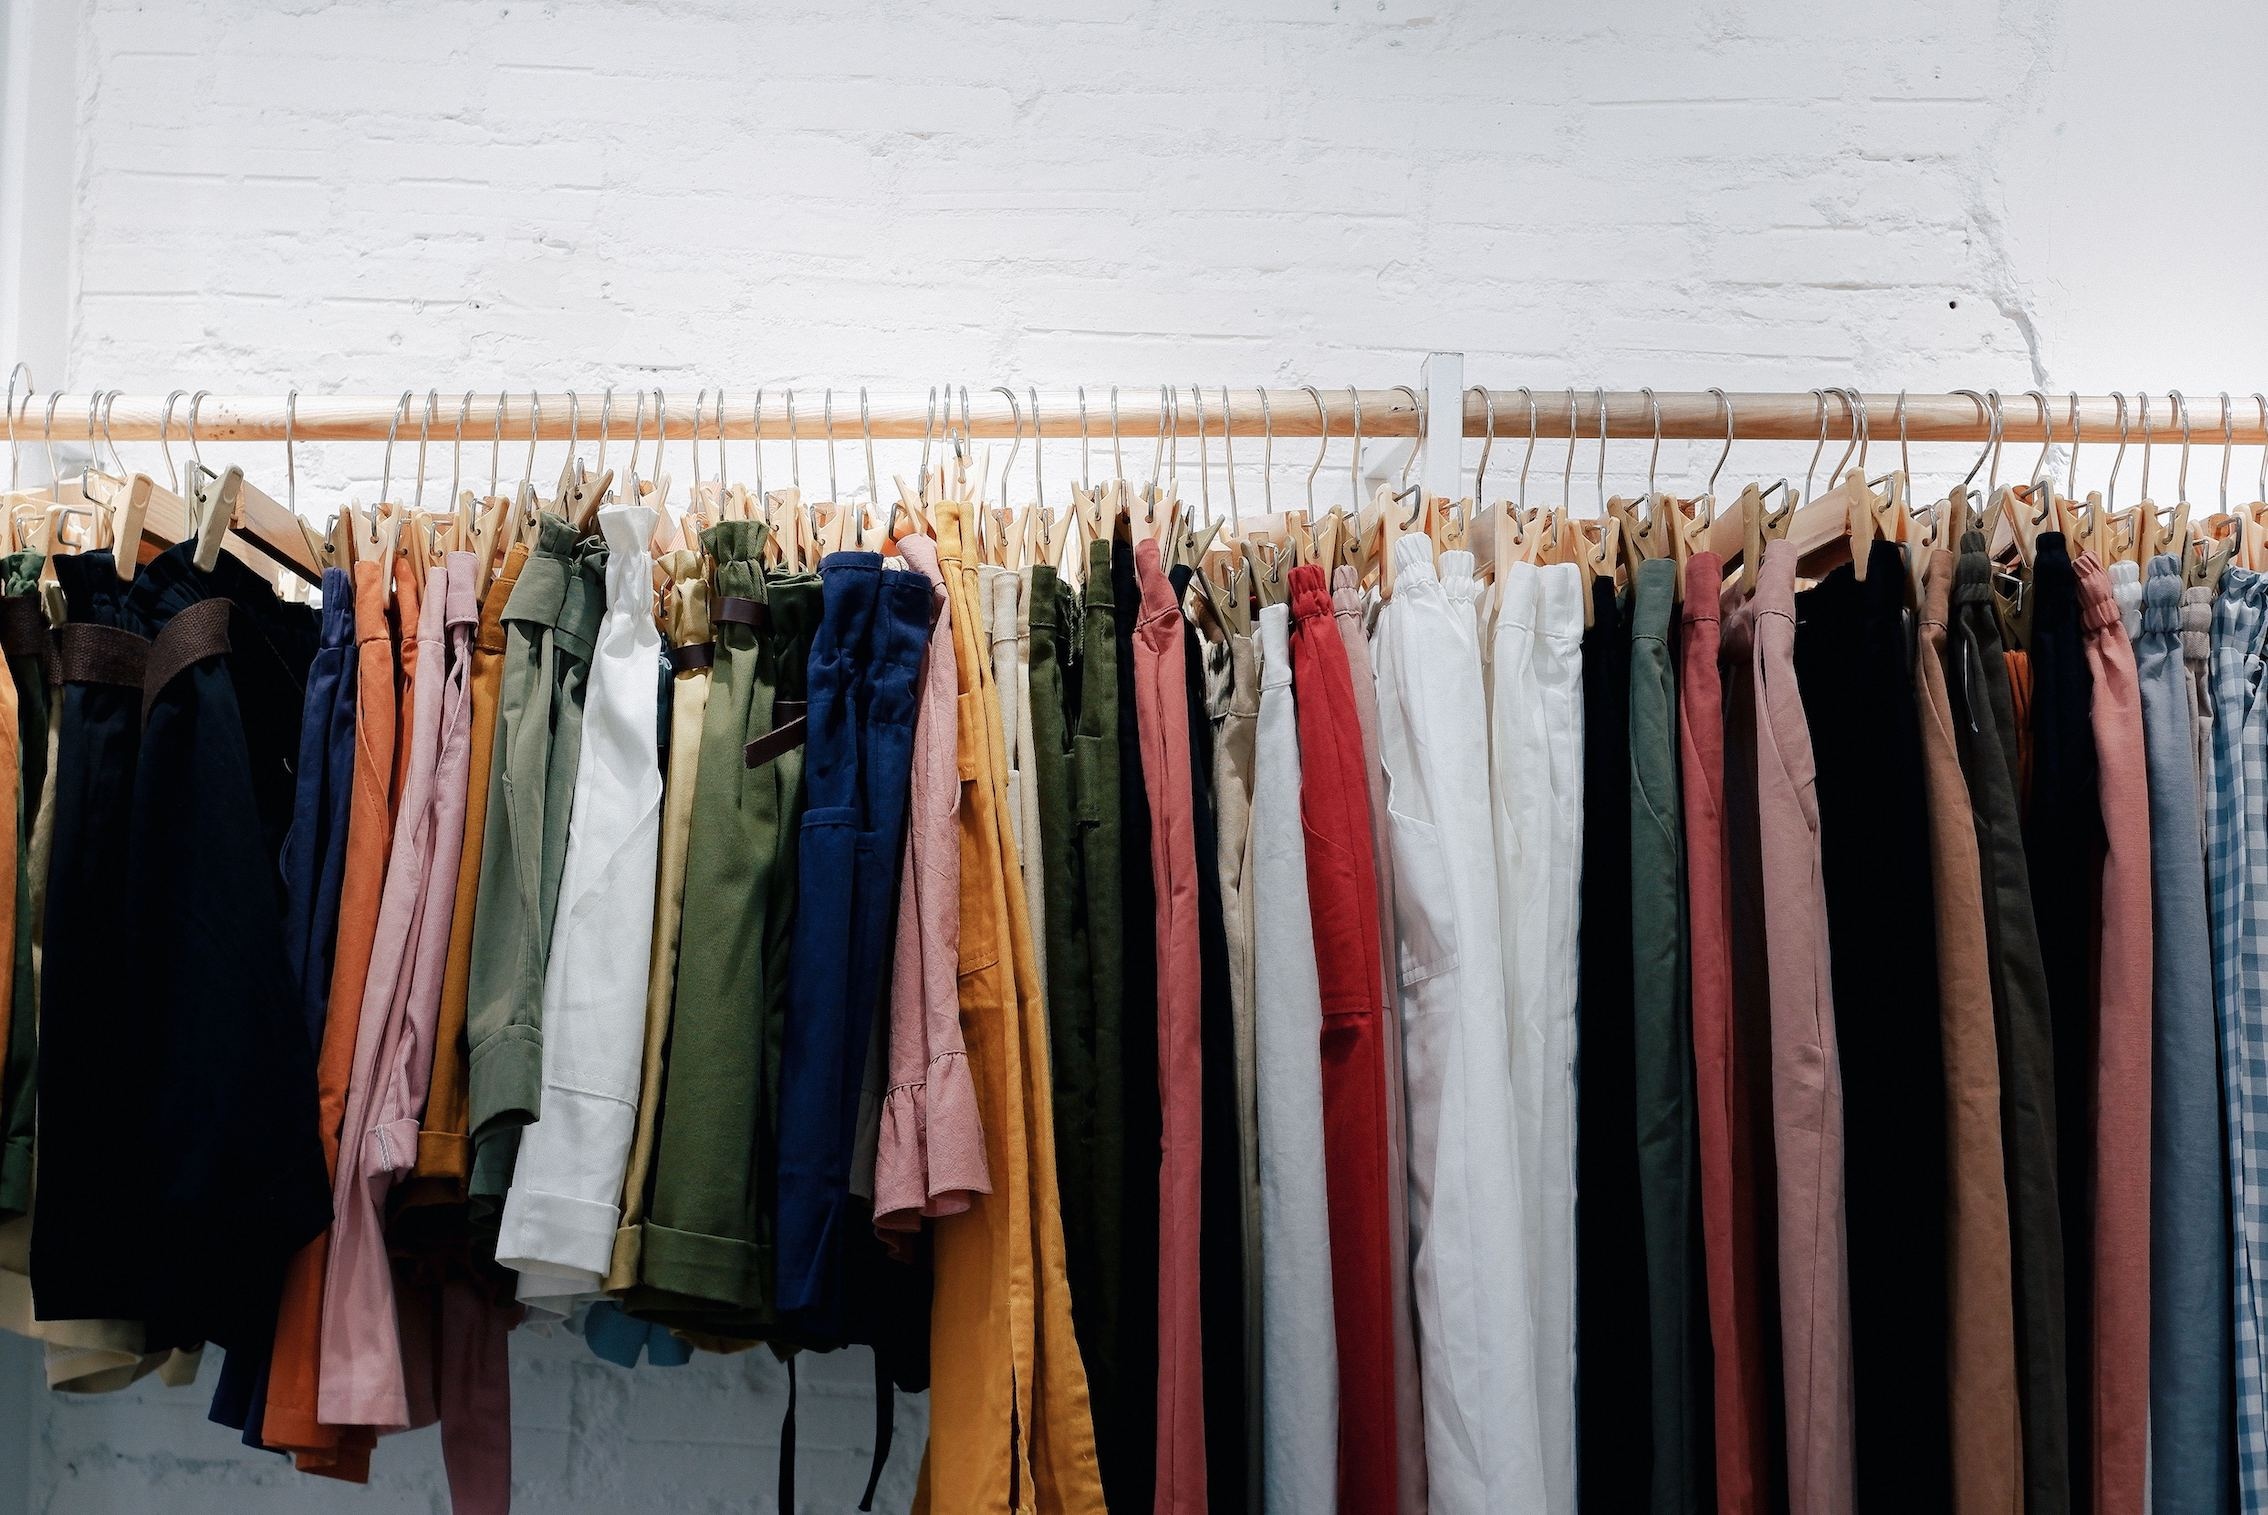 pre-loved vintage second-hand shopping